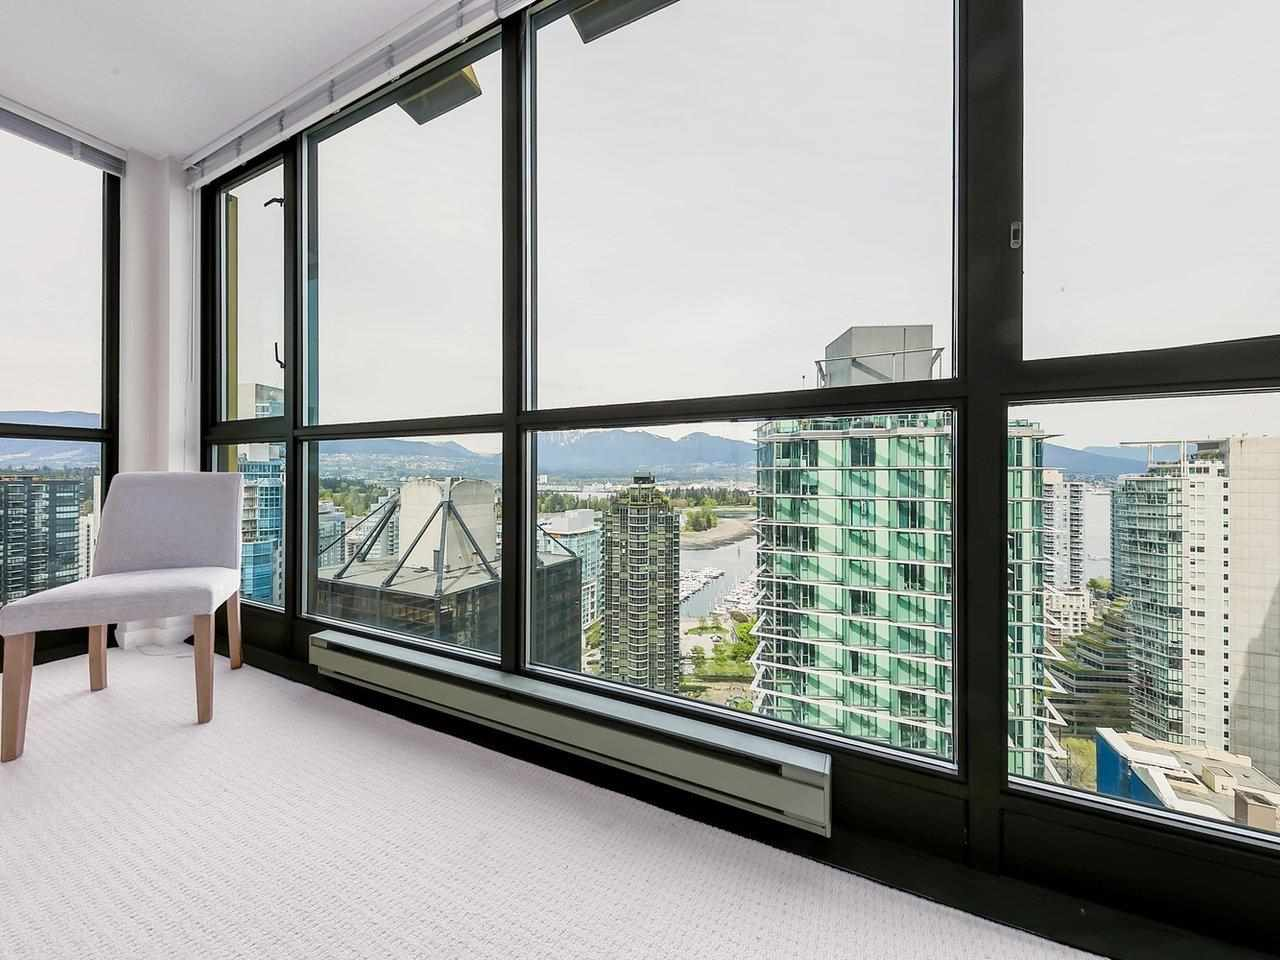 2701 1331 ALBERNI STREET - West End VW Apartment/Condo for sale, 3 Bedrooms (R2576100) - #19